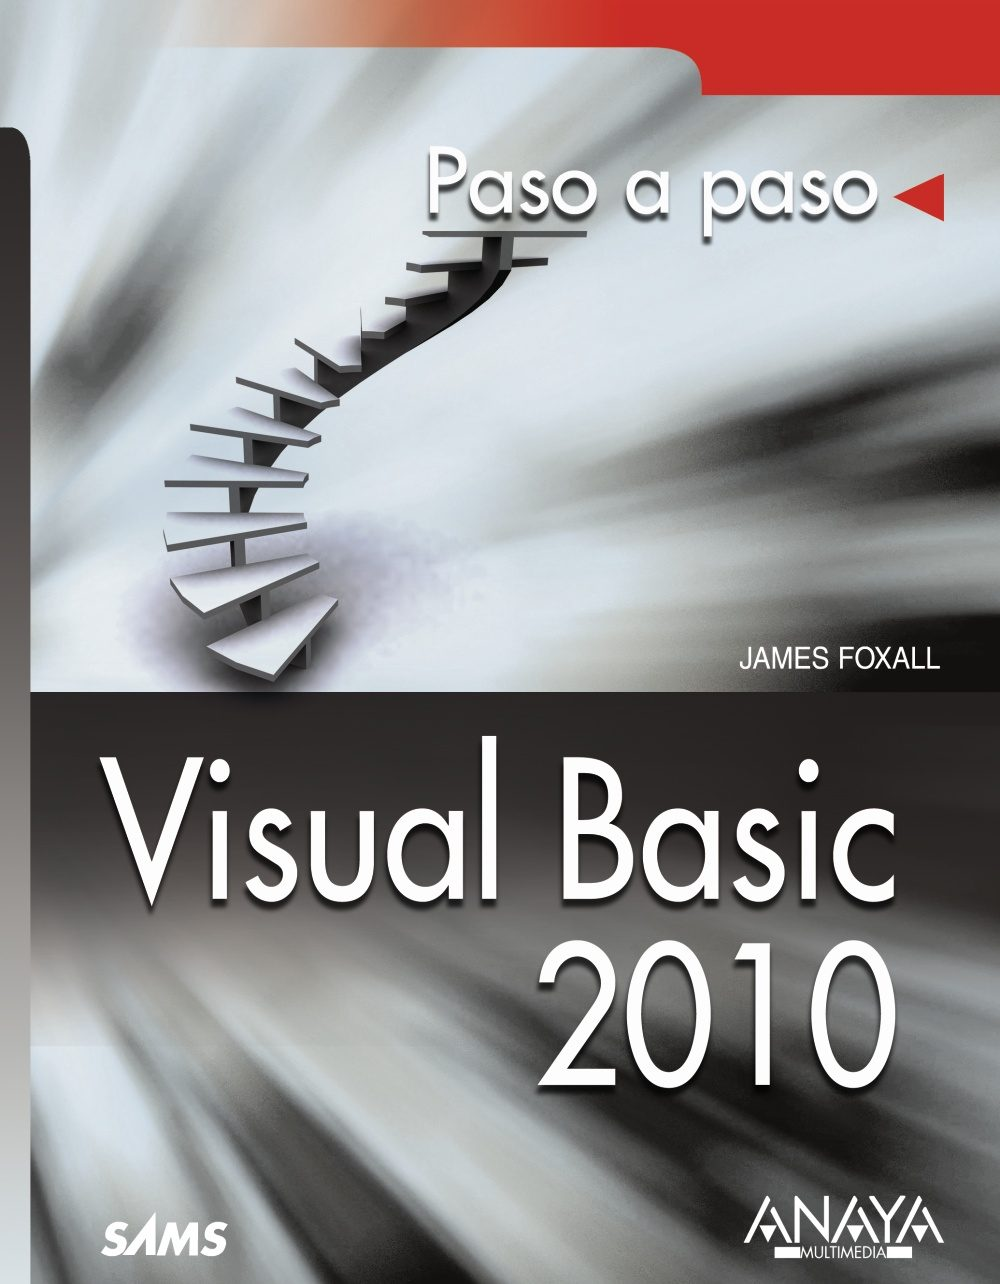 visual basic 2010 paso a paso james d foxall comprar libro